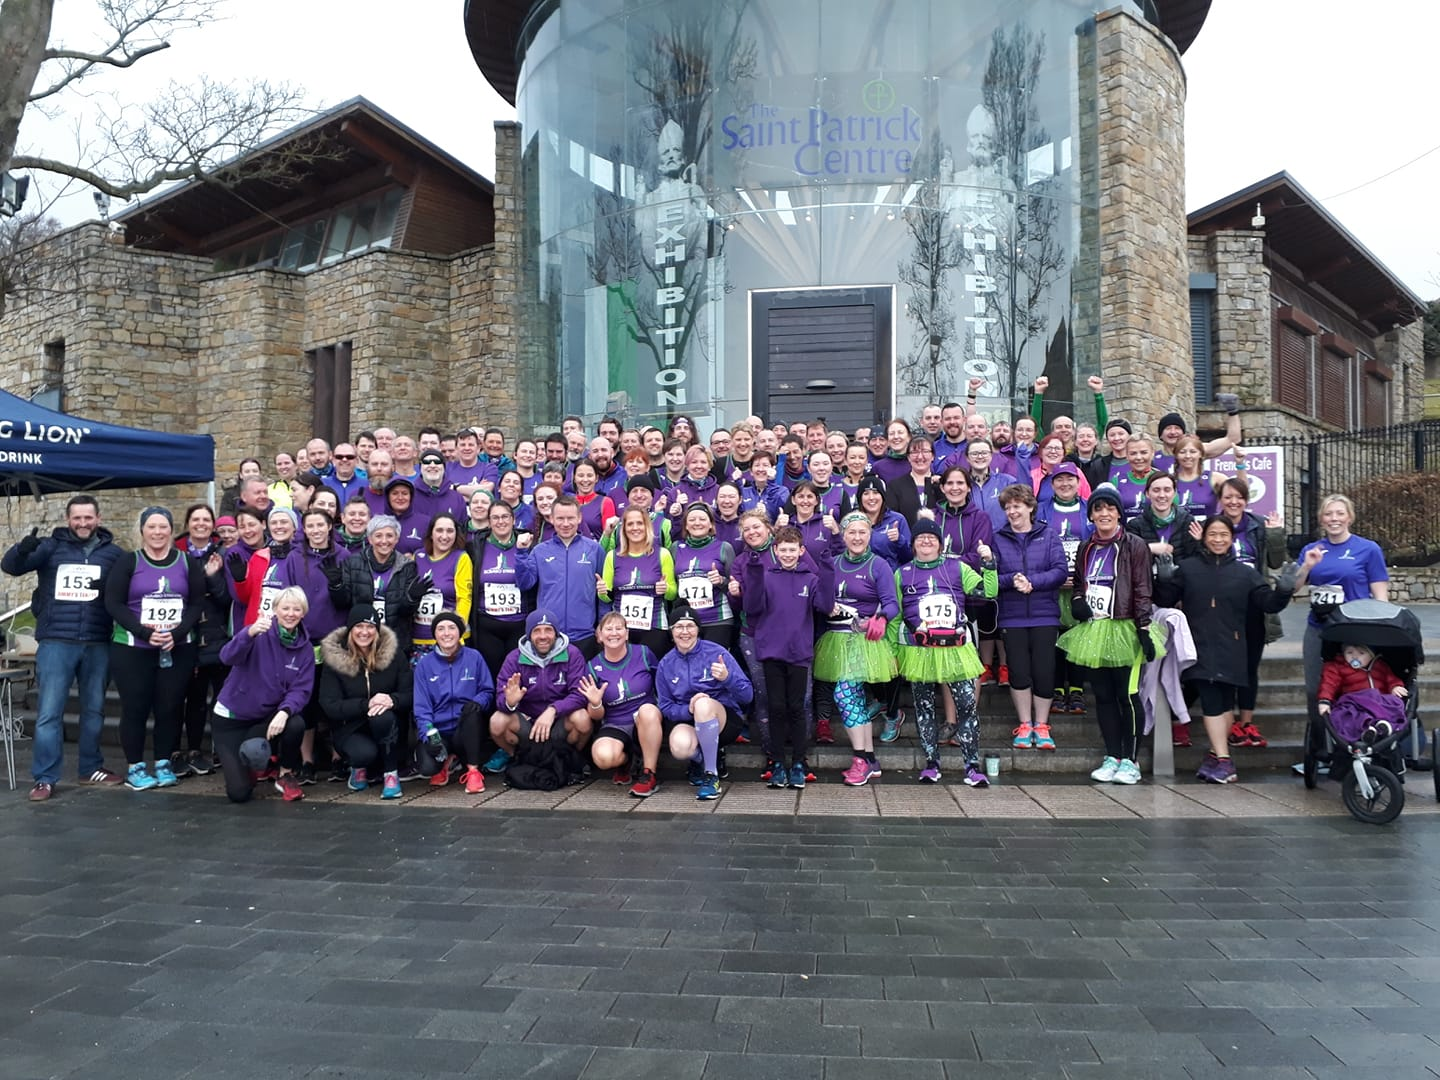 With over 126 athletes competing, Scrabo Striders had the single biggest club turnout at Jimmy's 10K.